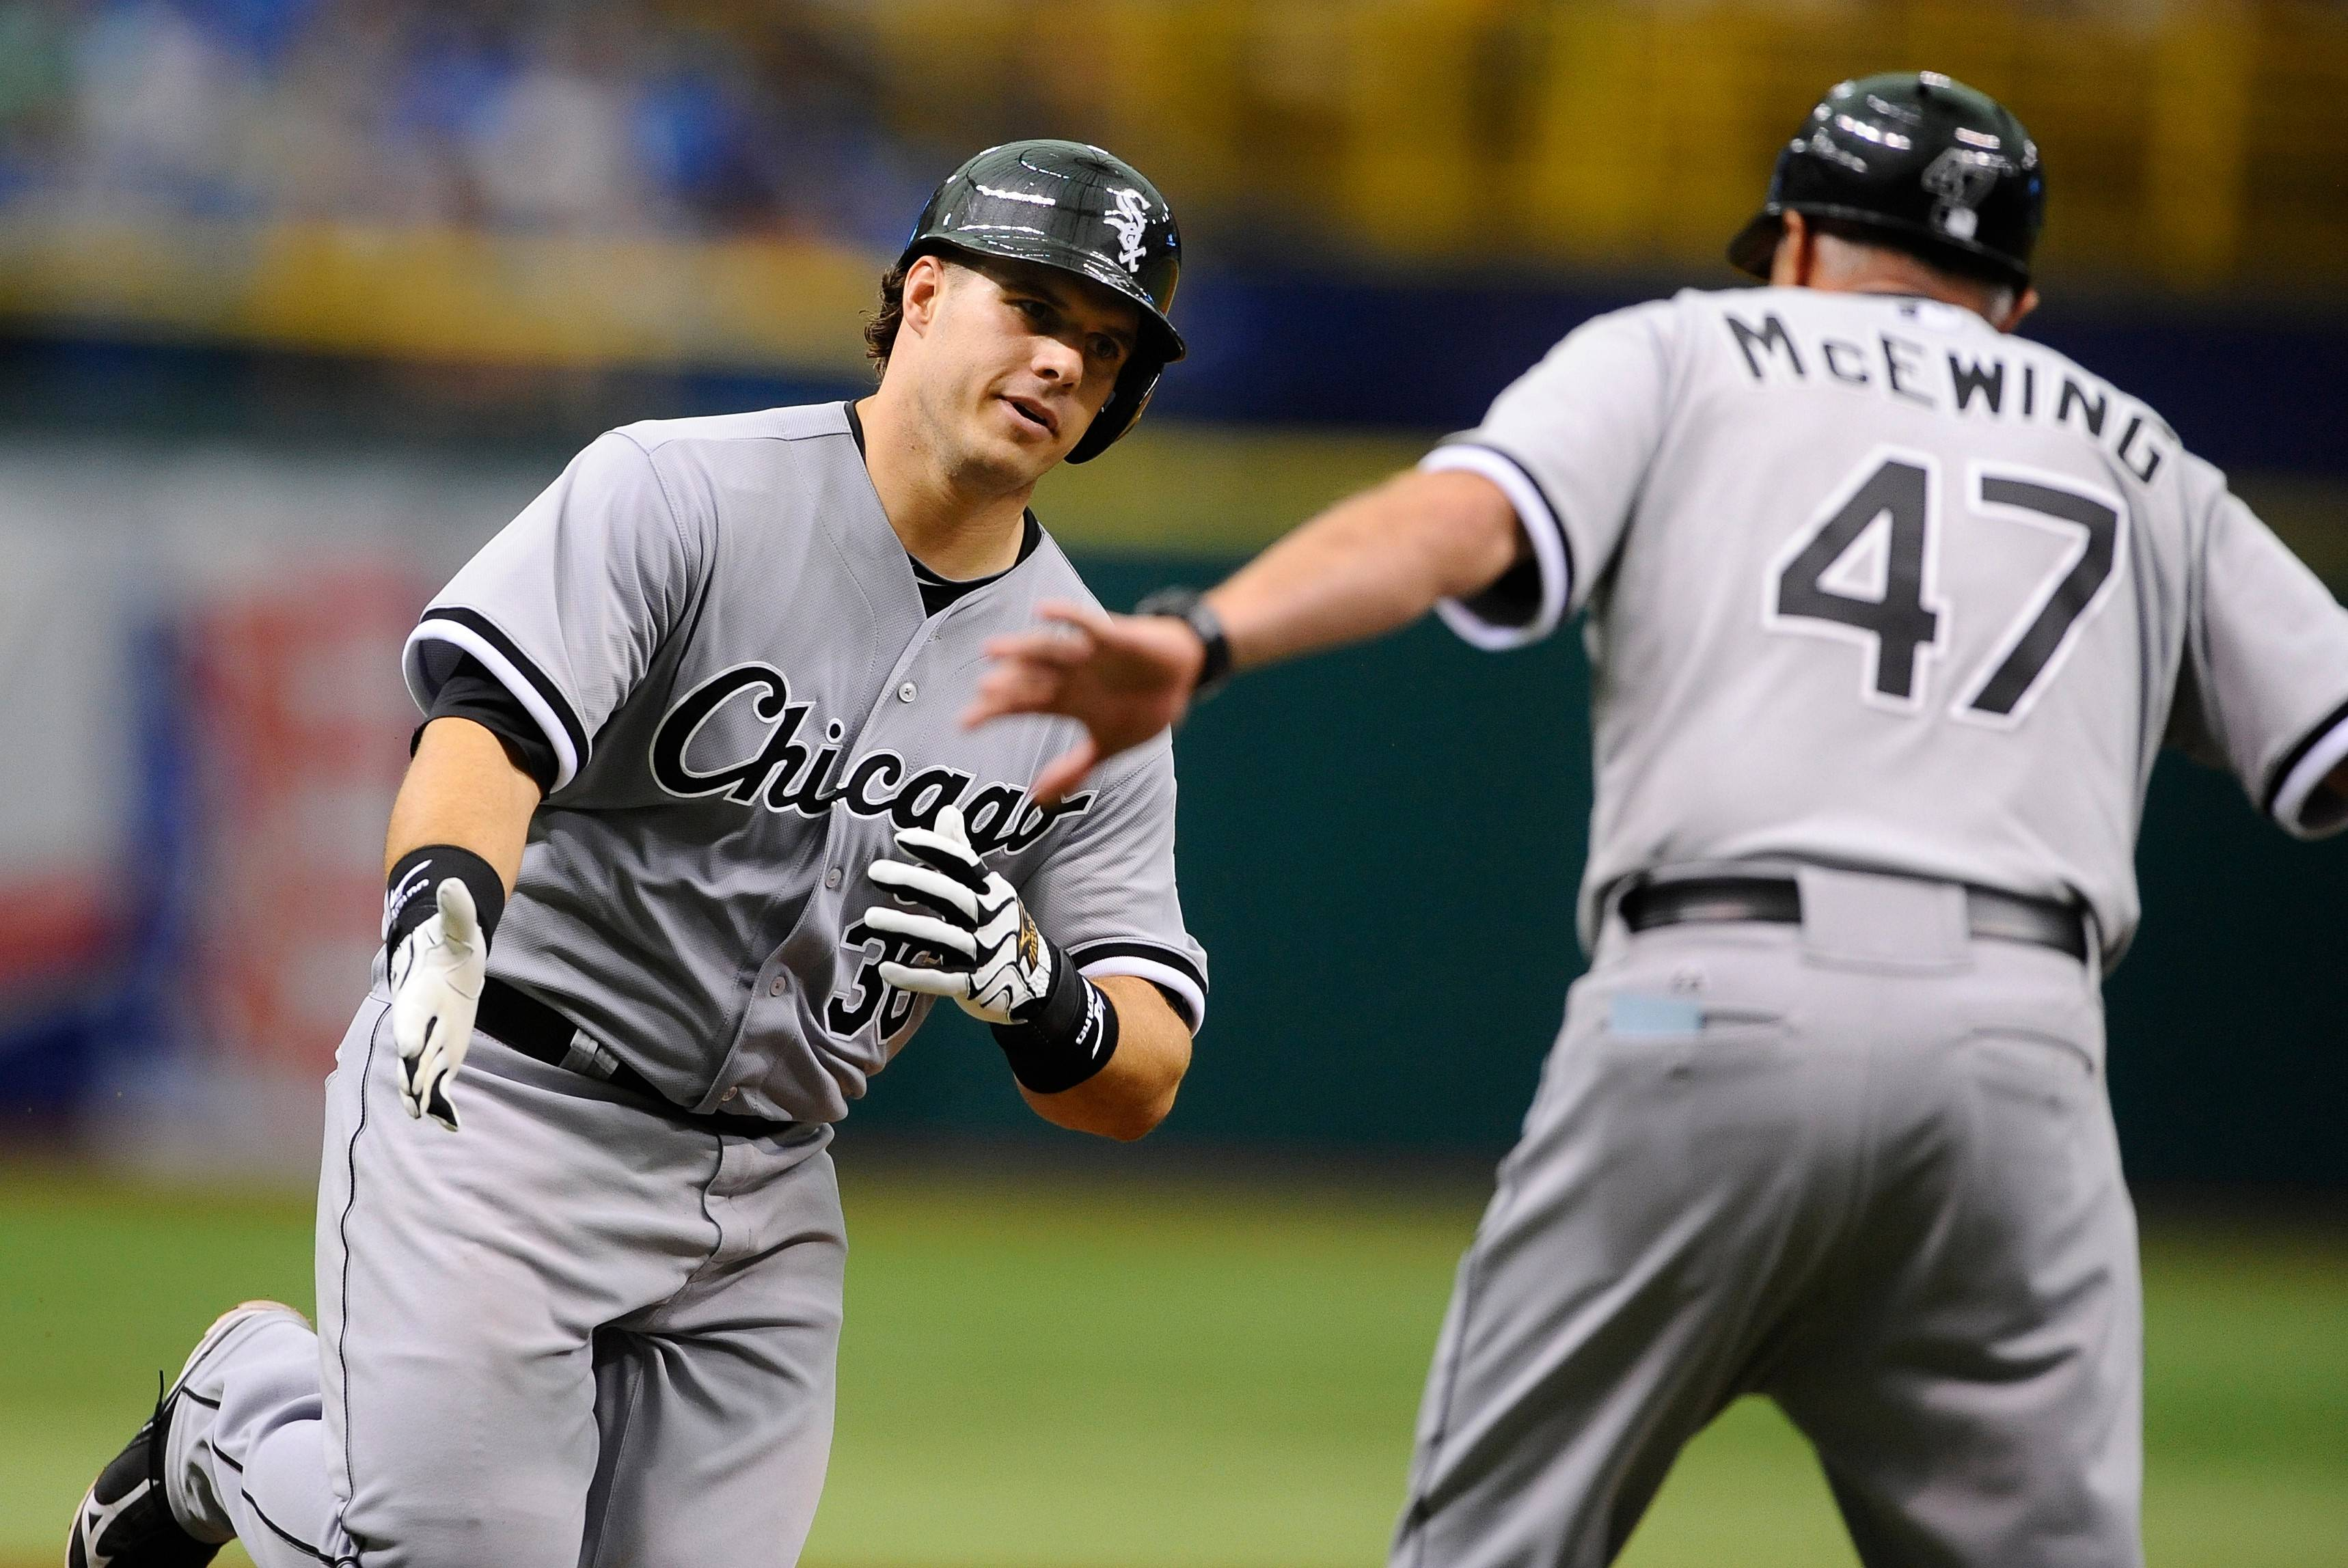 The White Sox optioned catcher Josh Phegley, left, to Class AAA Charlotte on Wednesday. Tyler Flowers was named the starting catcher earlier this week.